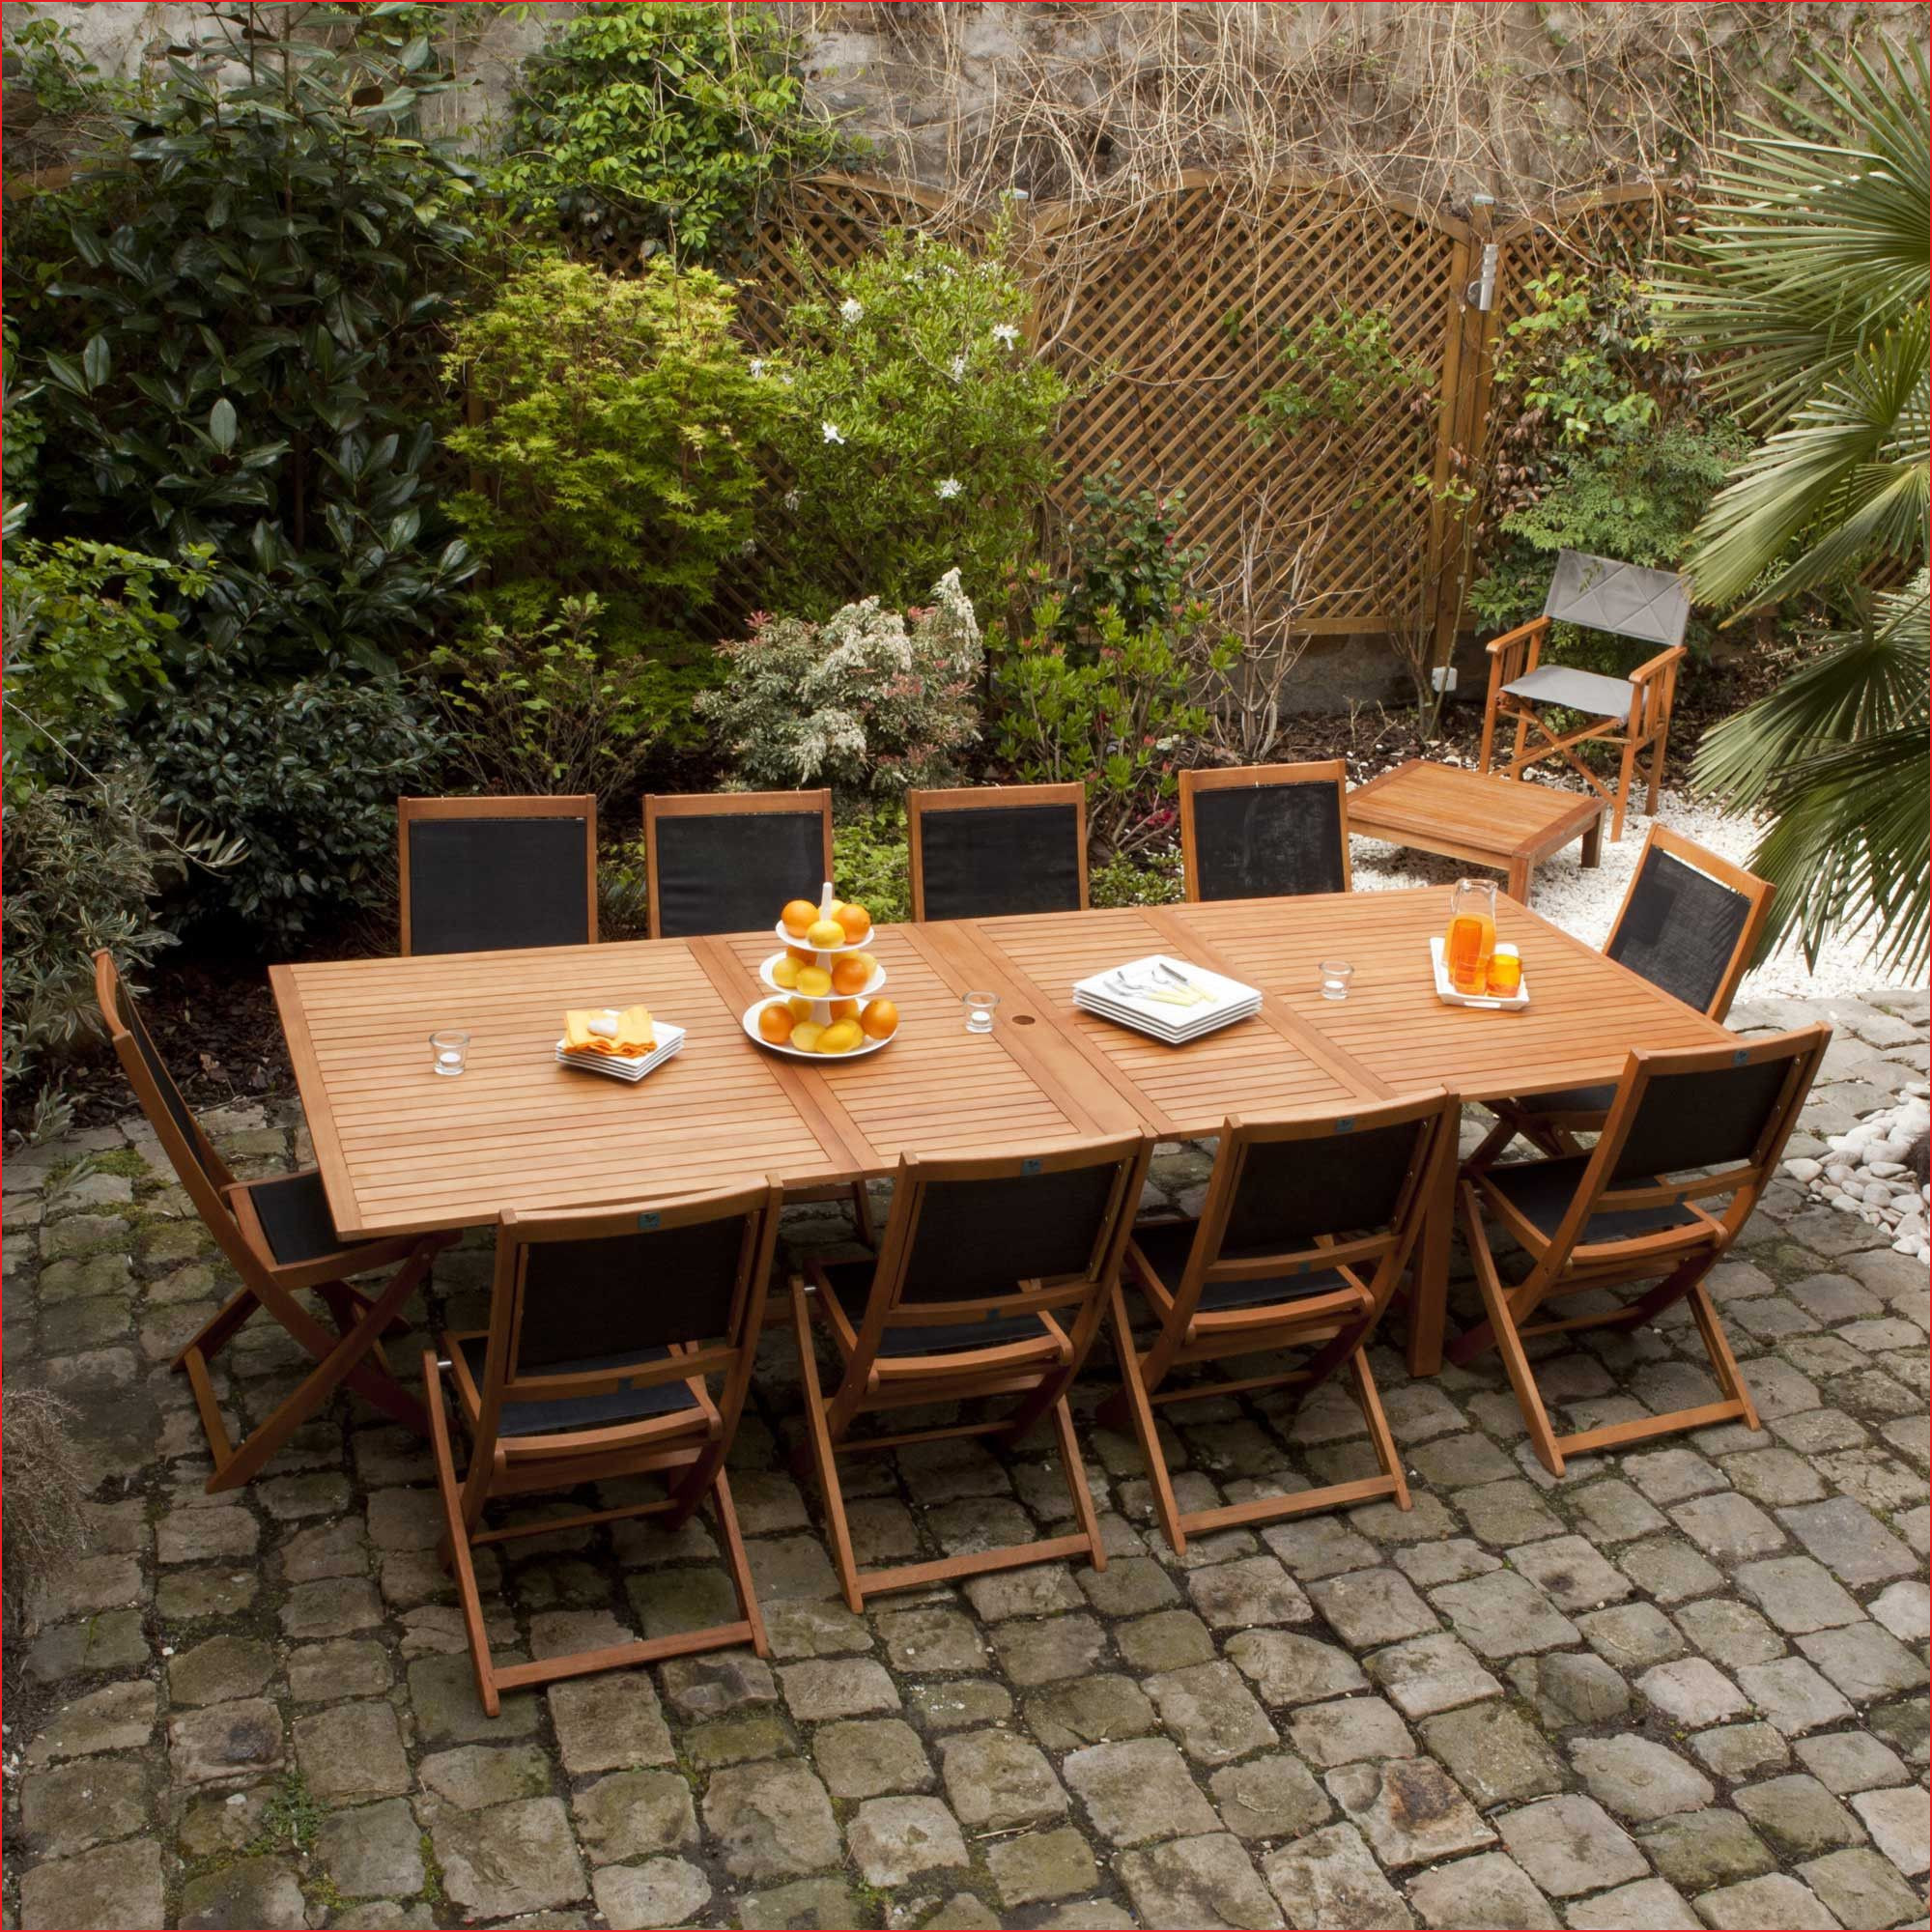 Table Terrasse Bois Inspirant Jardin Archives Francesginsberg Of 37 Élégant Table Terrasse Bois